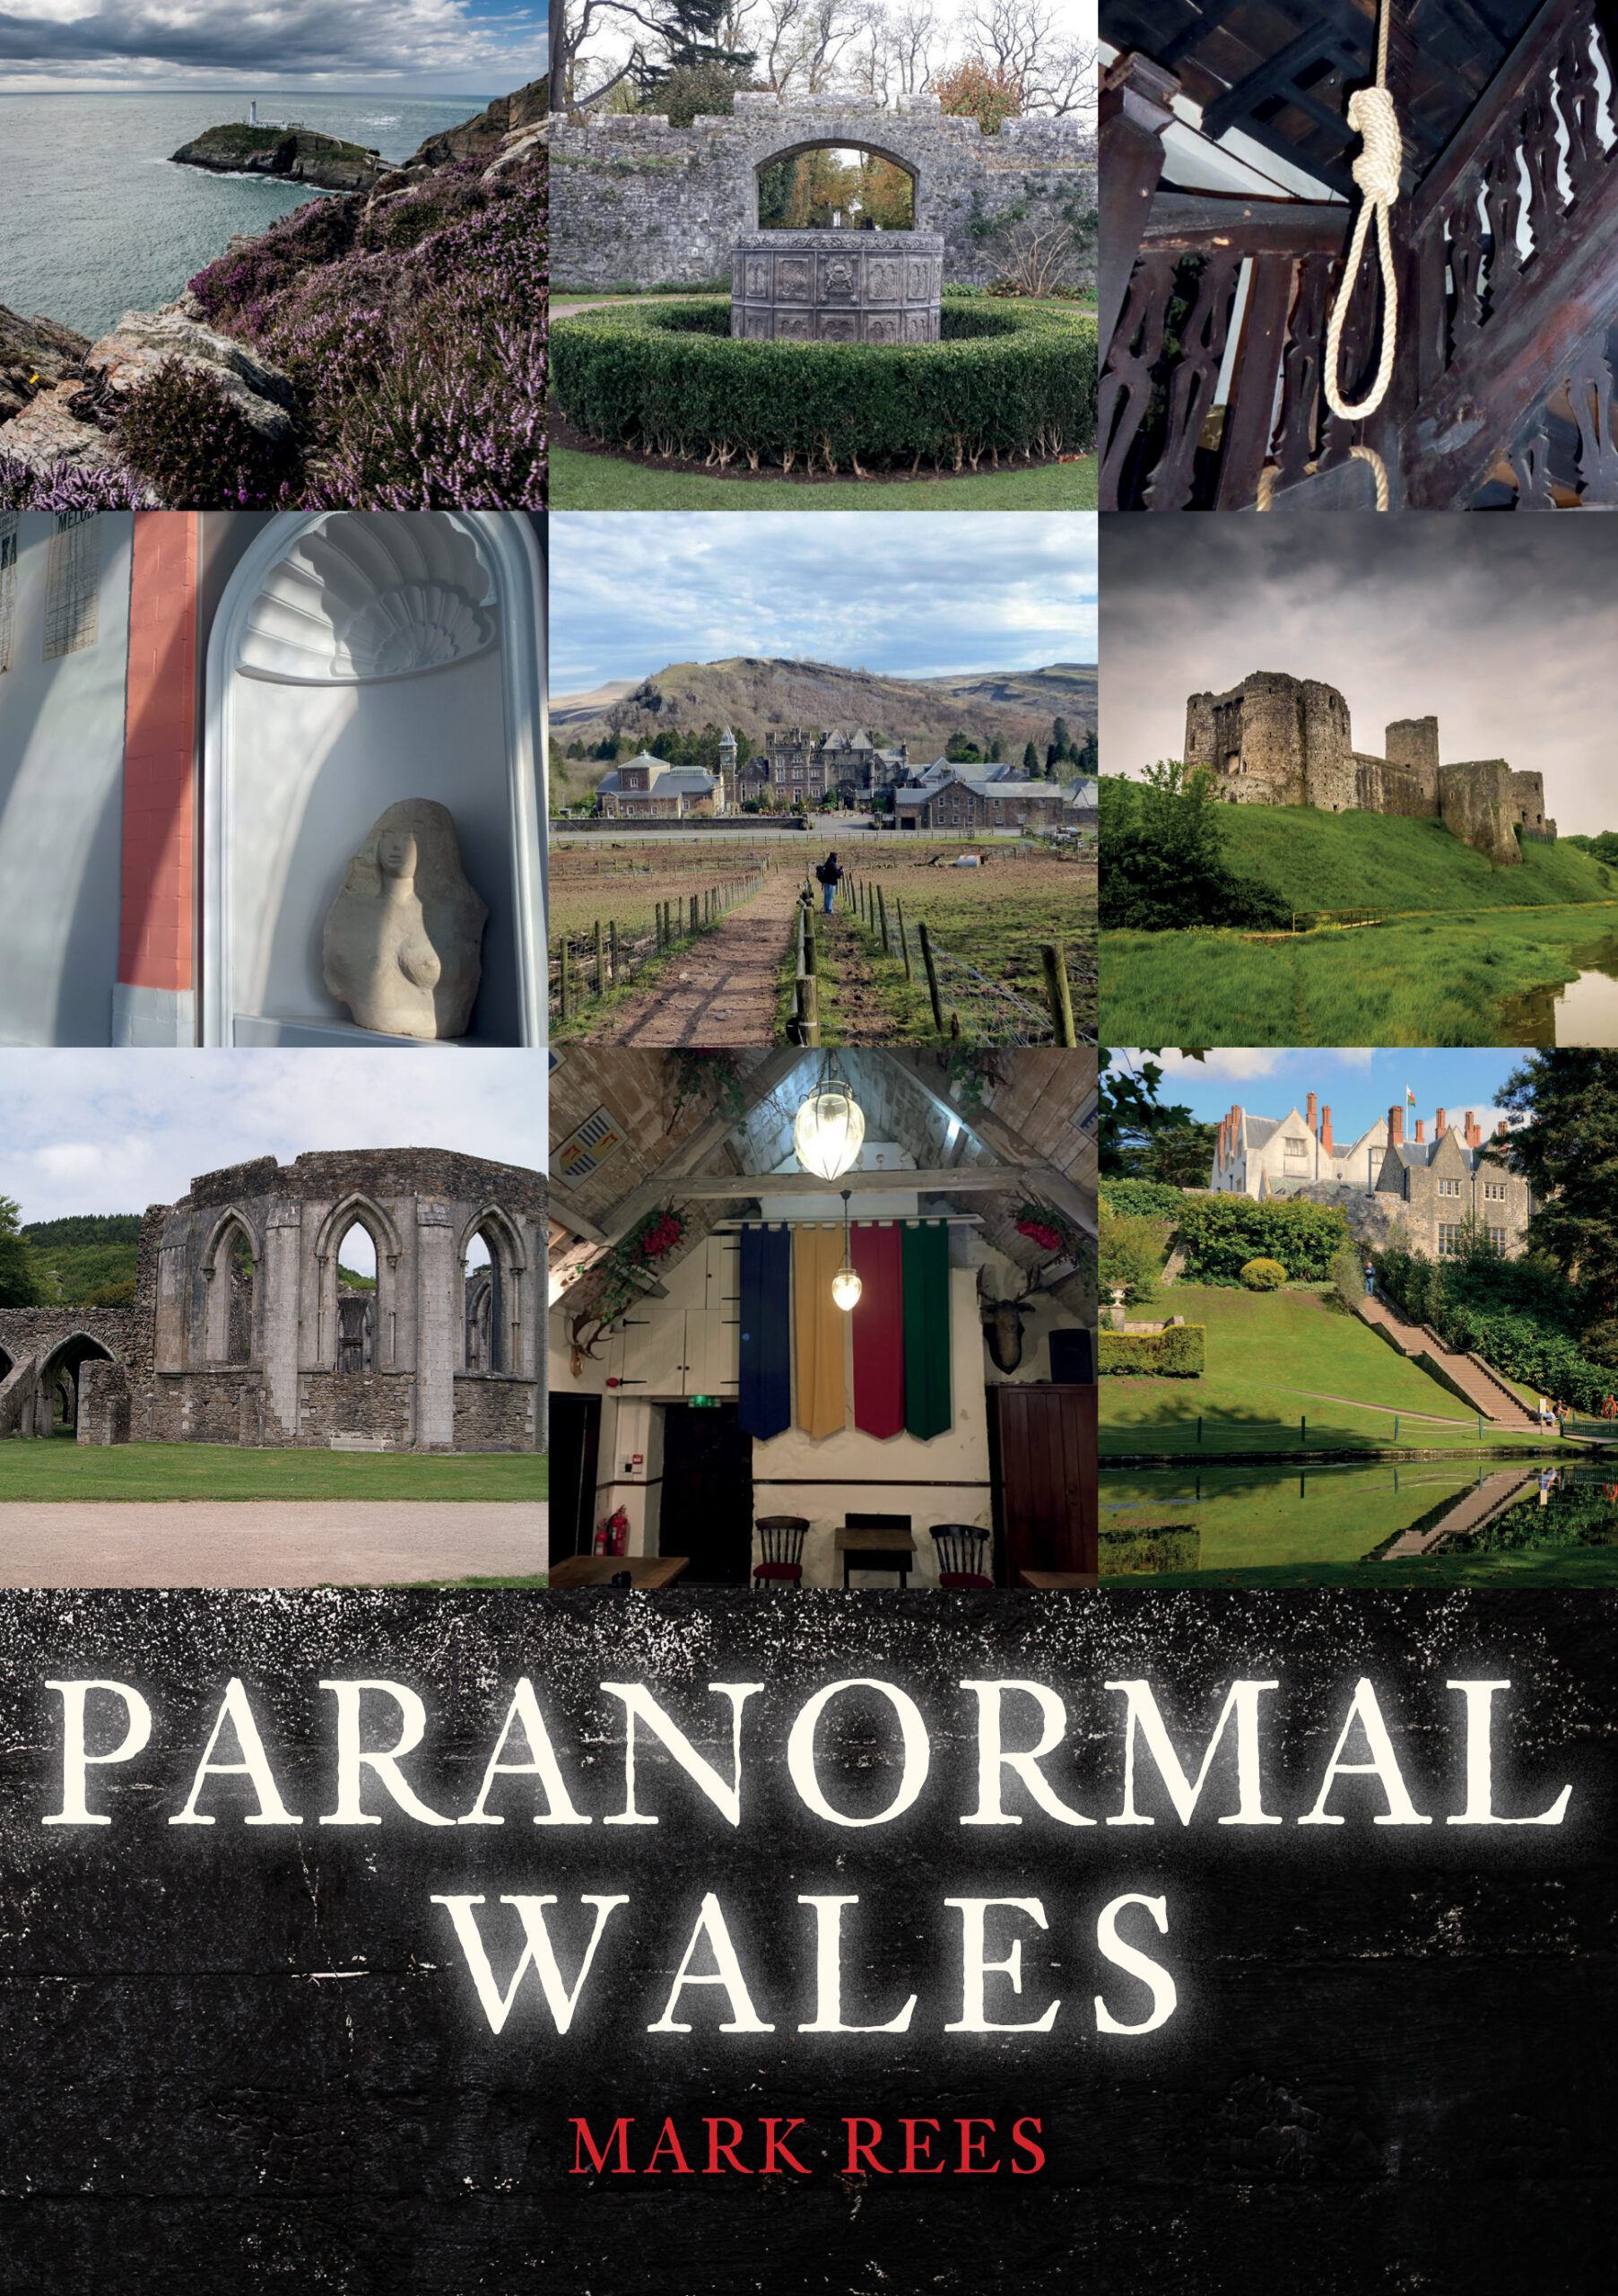 Paranormal Wales book by Mark Rees OUT NOW!